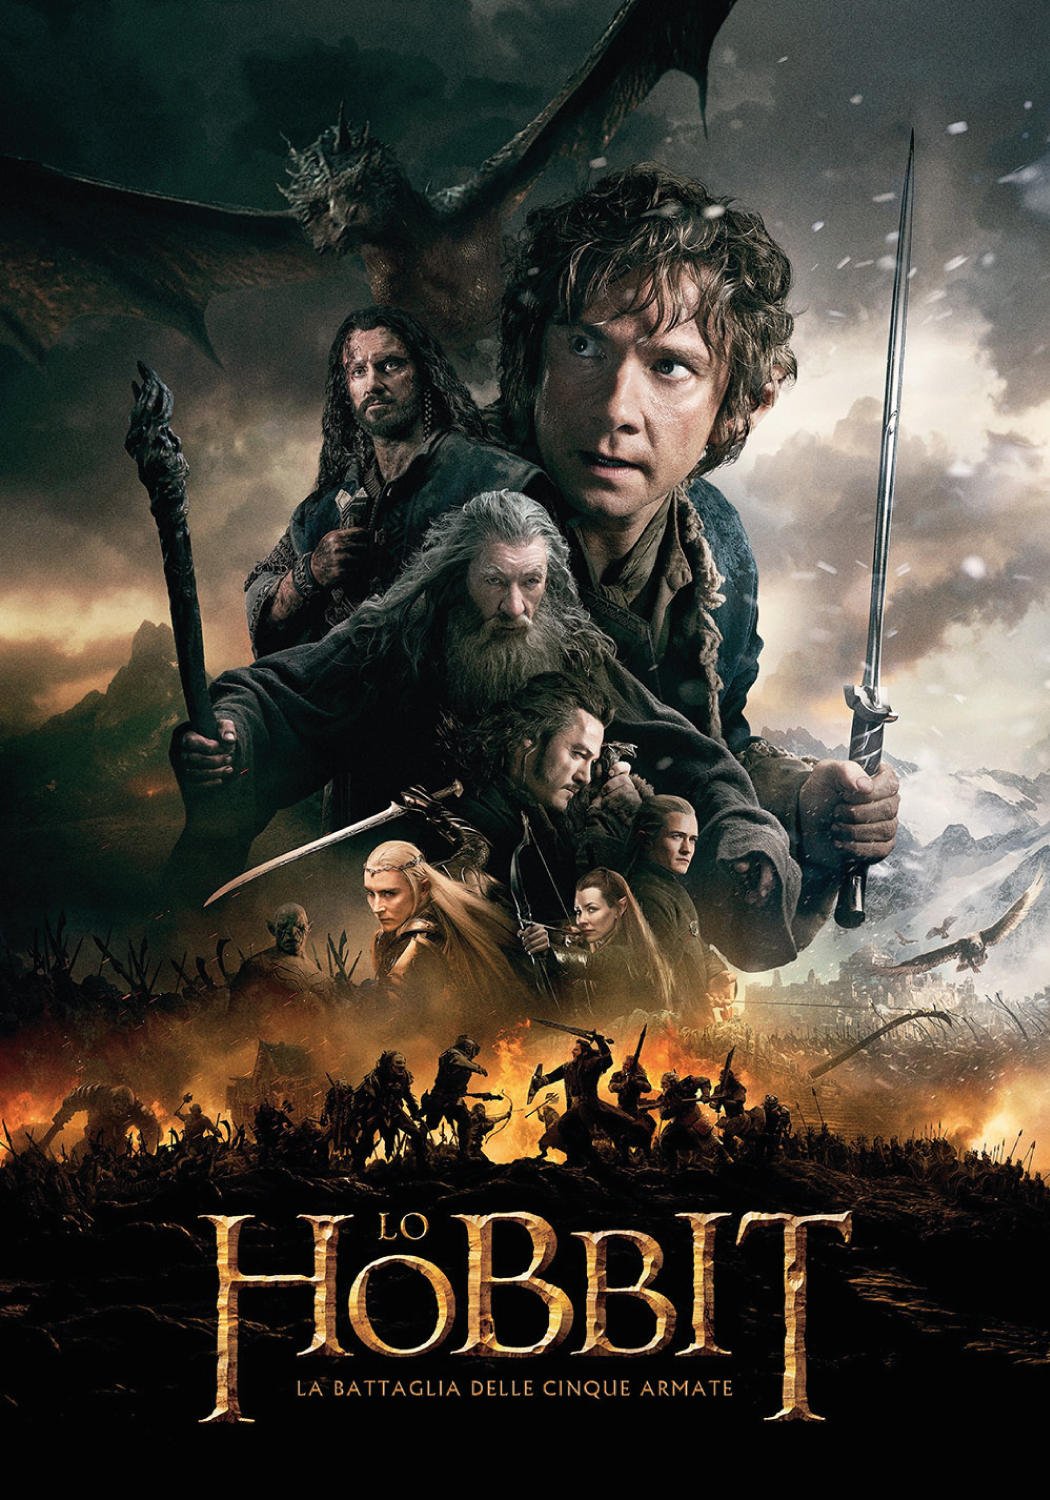 دانلود فیلم The Hobbit: The Battle of the Five Armies 2014